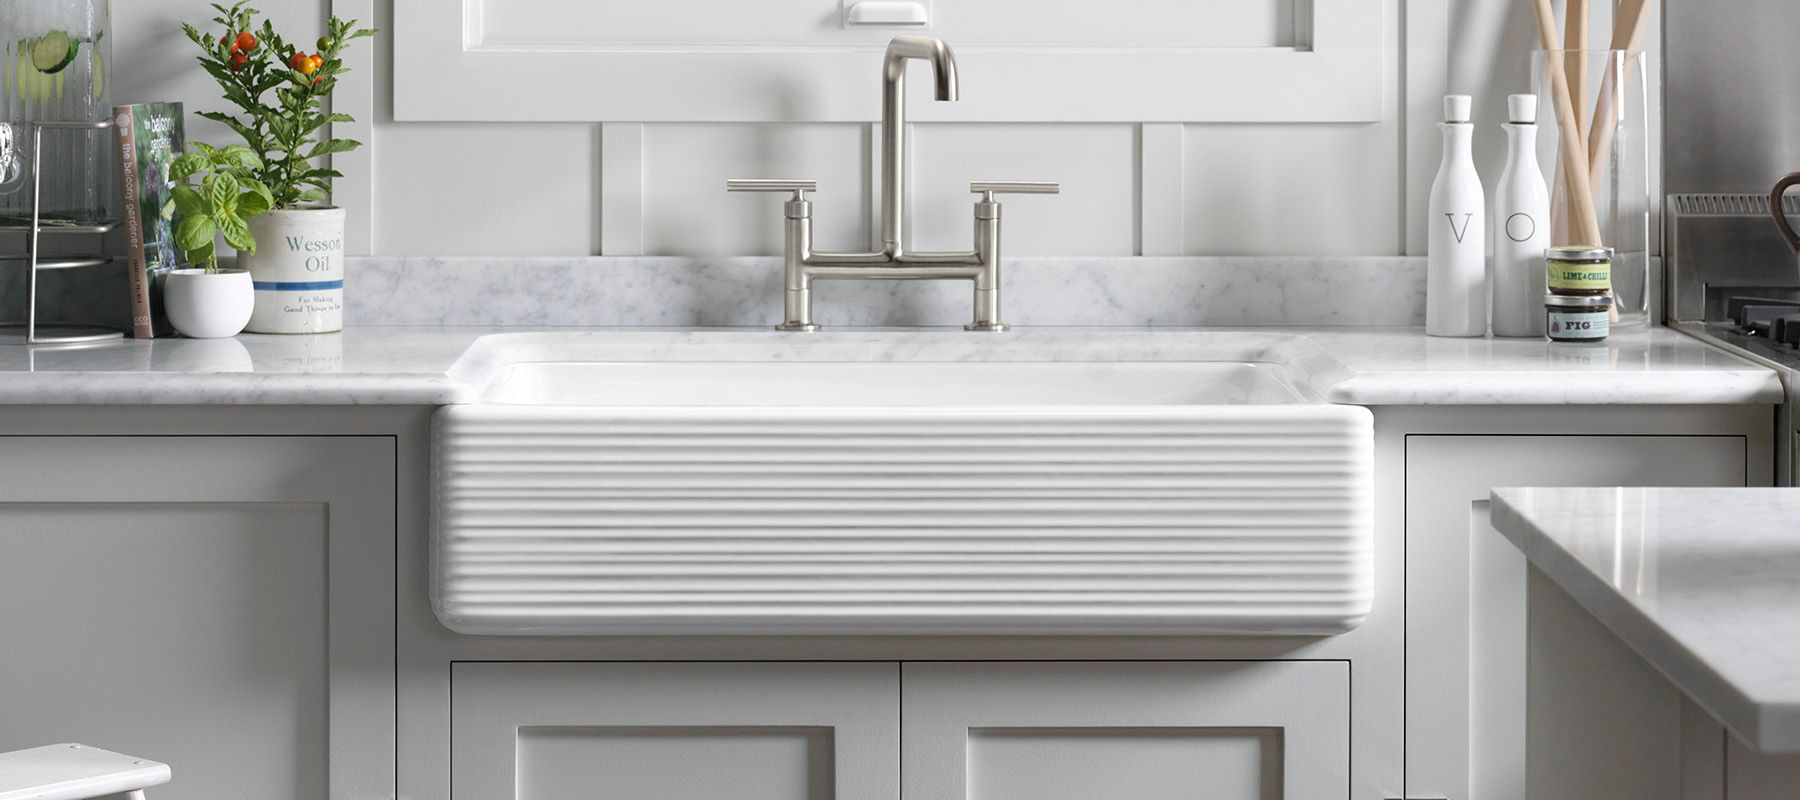 KOHLER Enameled Cast Iron Kitchen Sinks | Kitchen | KOHLER